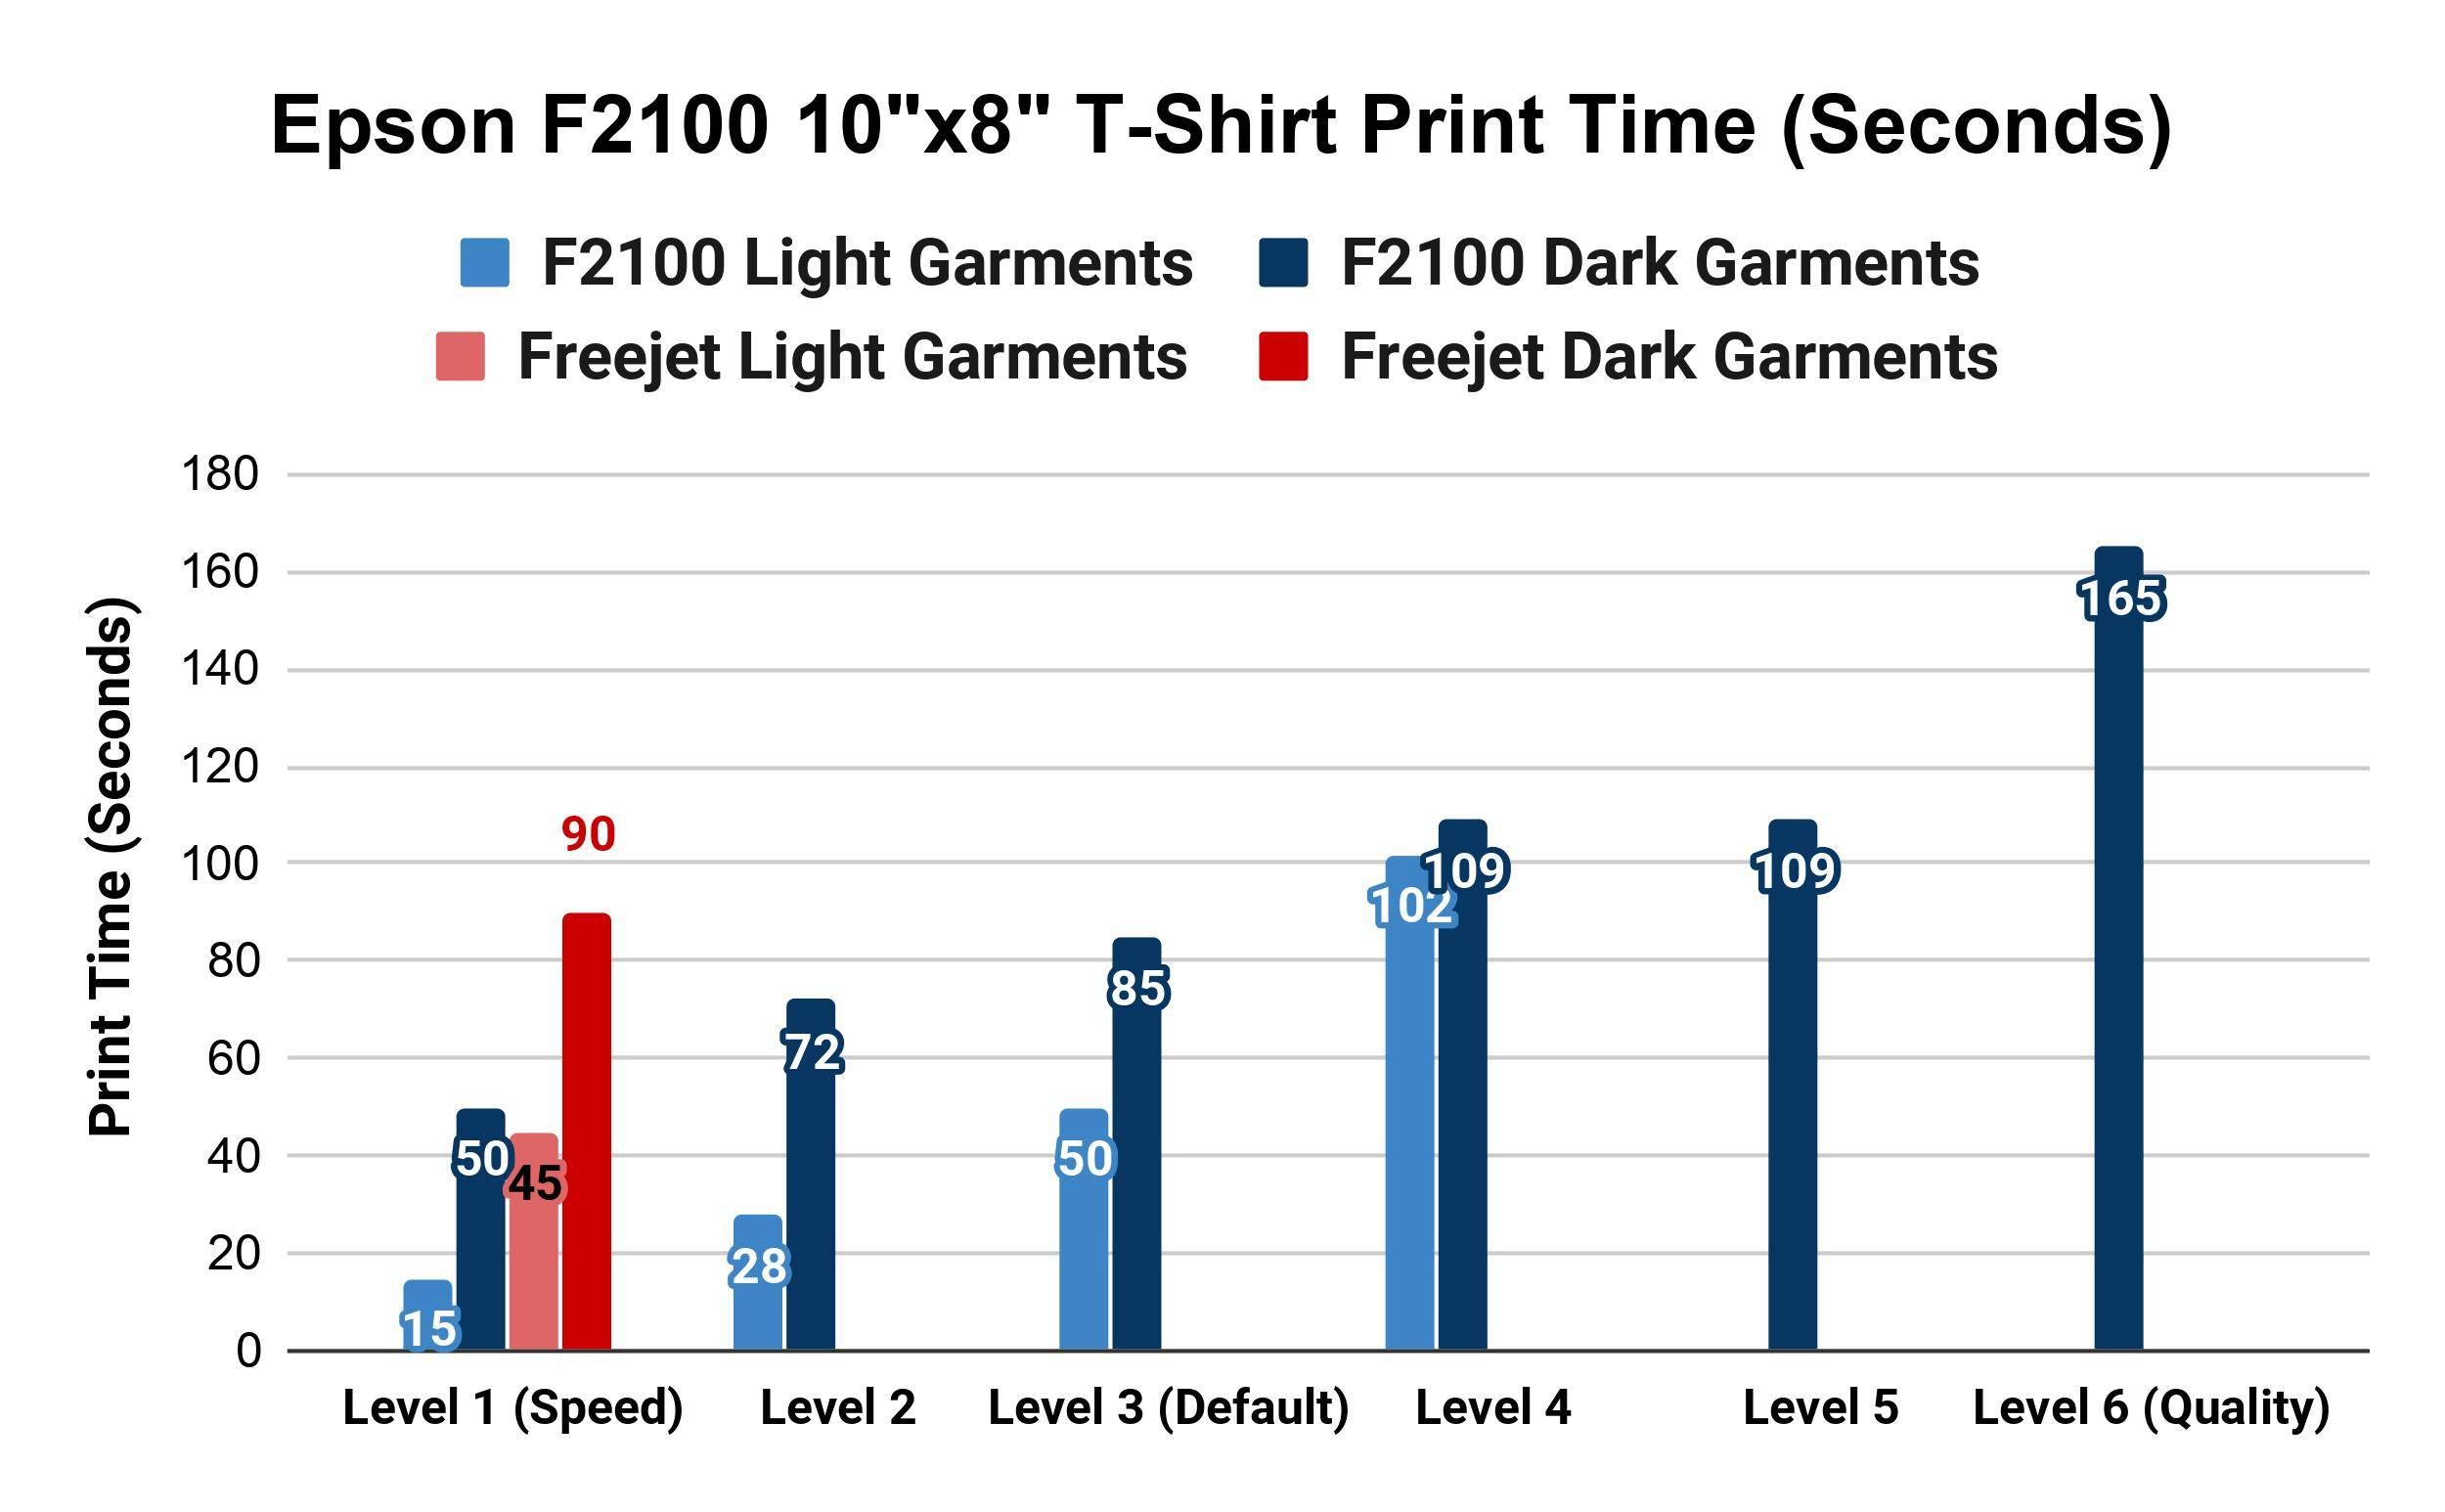 Epson F2100 and Omni Freejet Print Spped Comparison Chart